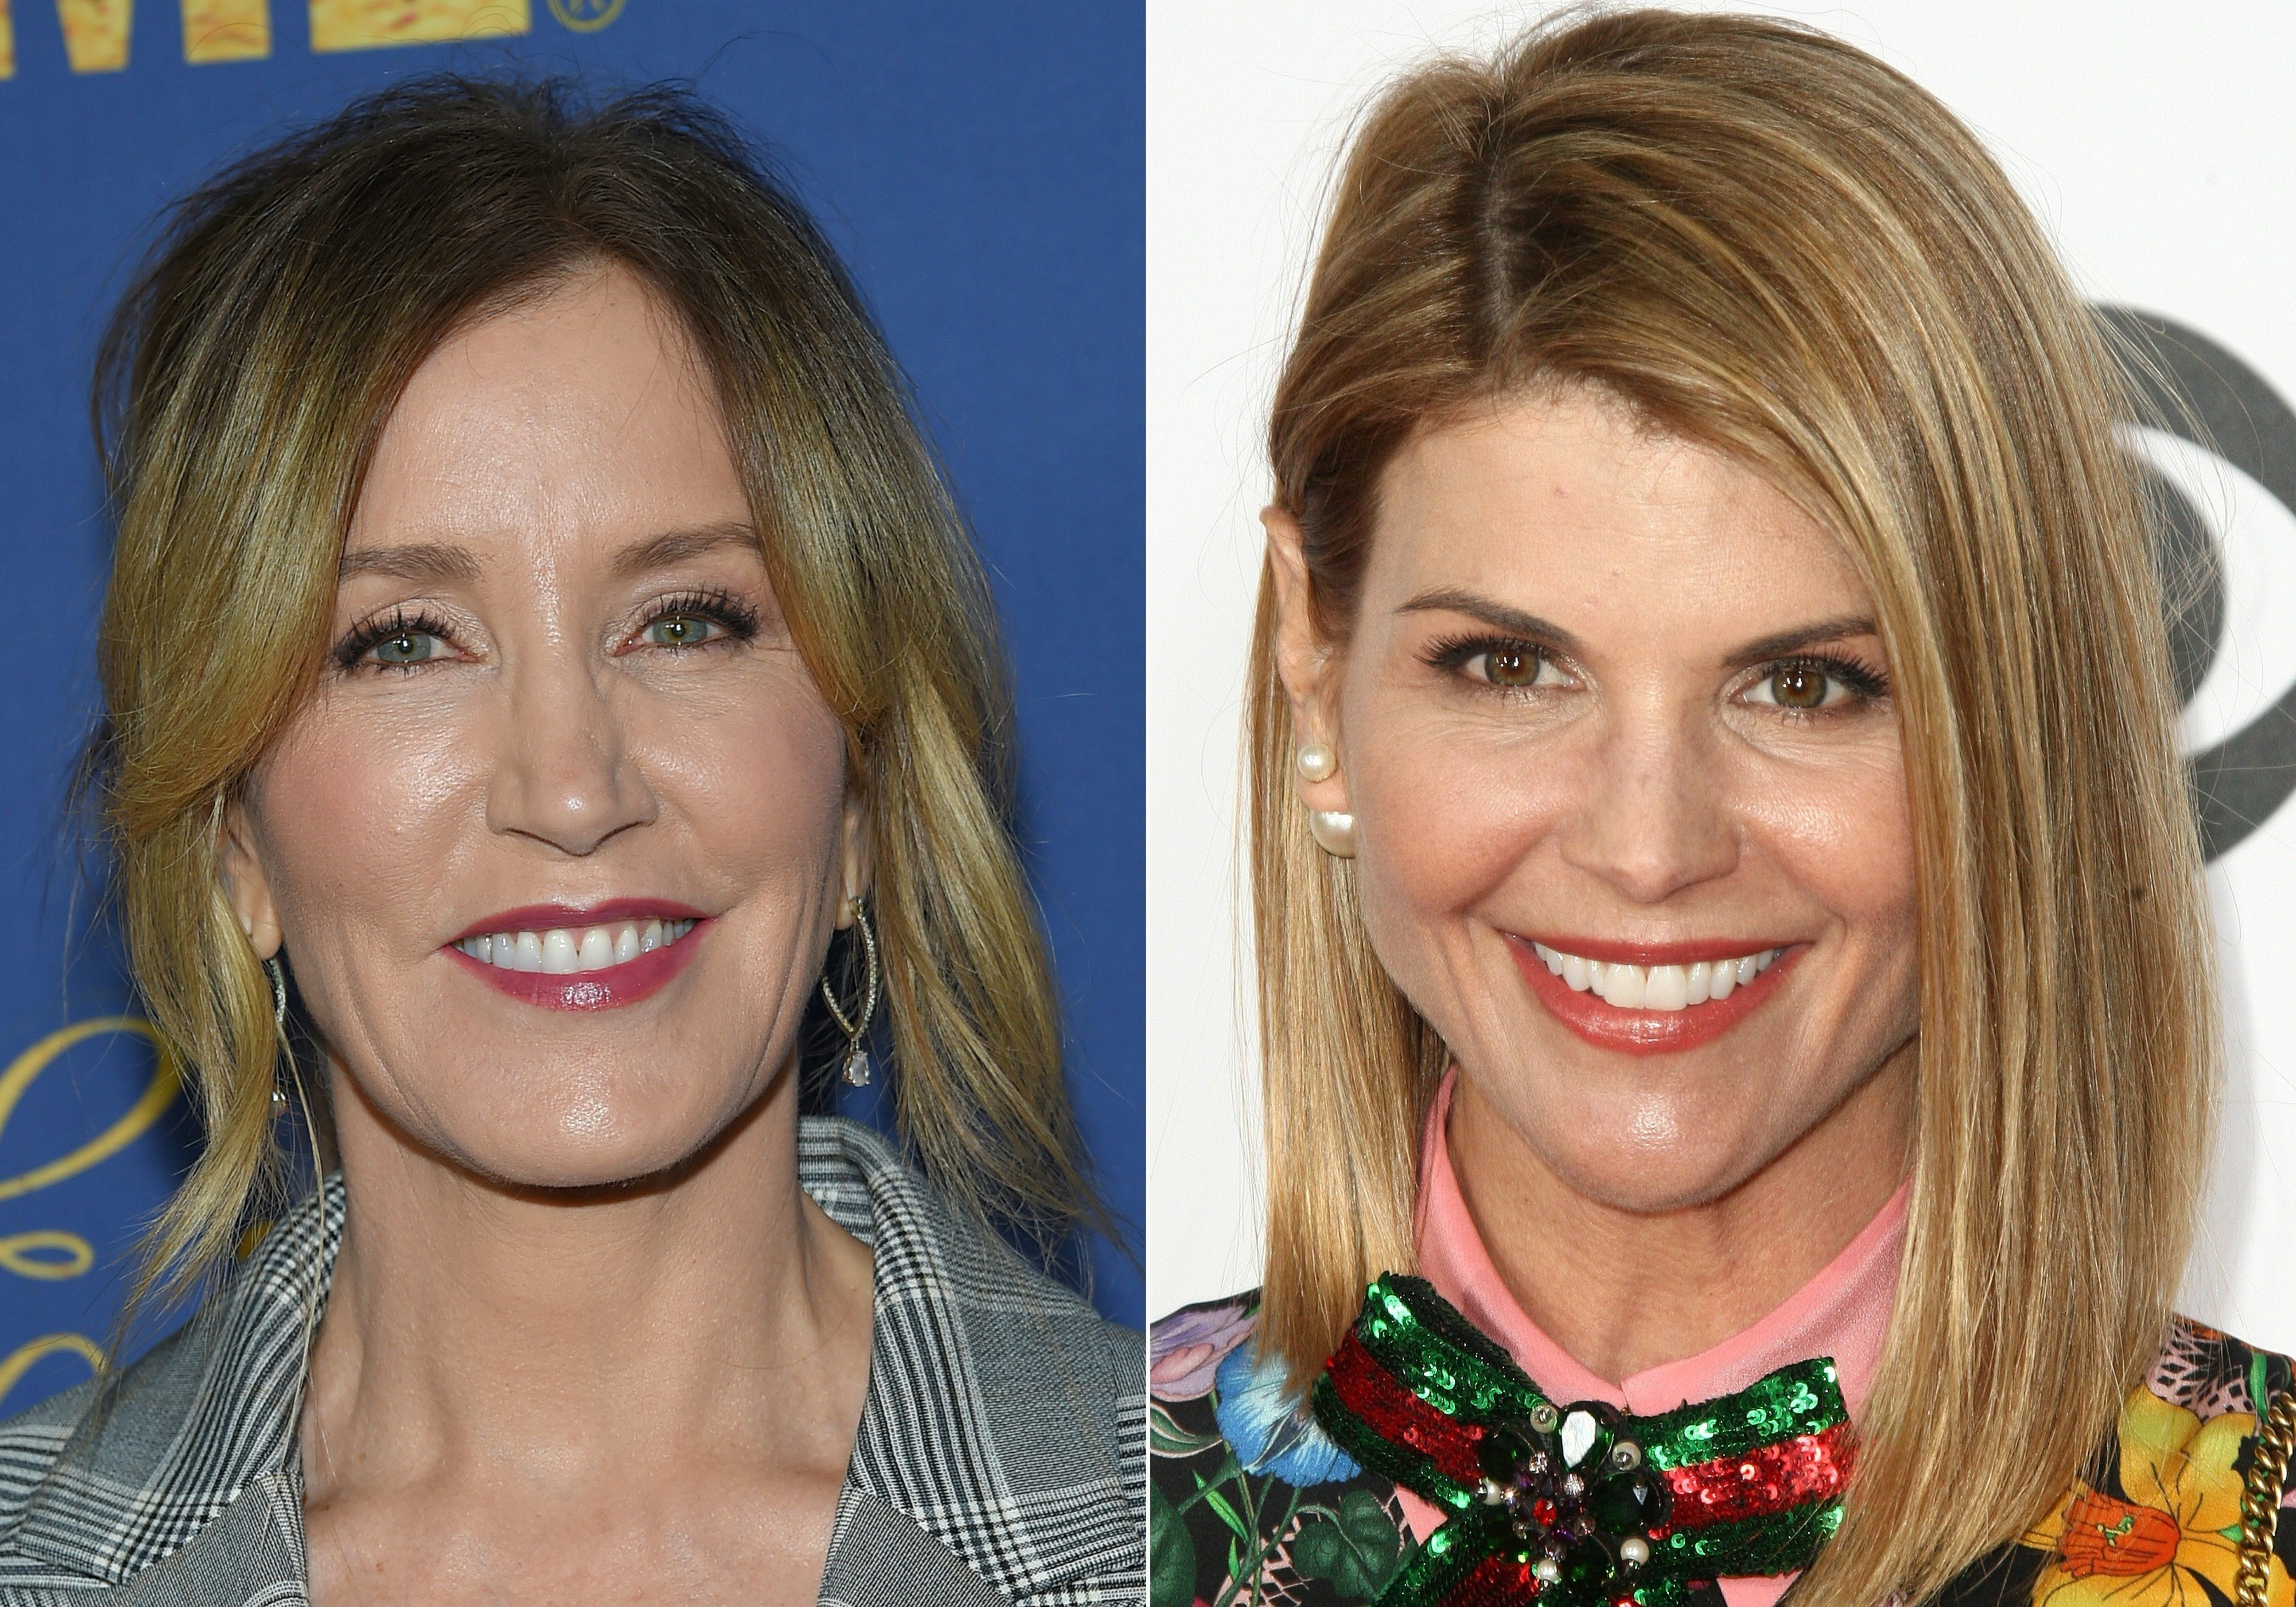 (COMBO) This combination of pictures created on March 12, 2019 shows US actress Felicity Huffman(L) attending the Showtime Emmy Eve Nominees Celebration in Los Angeles on September 16, 2018 and actress Lori Loughlin arriving at the People's Choice Awards 2017 at Microsoft Theater in Los Angeles, California, on January 18, 2017. - Two Hollywood actresses including Oscar-nominated 'Desperate Housewives' star Felicity Huffman are among 50 people indicted in a nationwide university admissions scam, court records unsealed in Boston on March 12, 2019 showed. The accused, who also include chief executives, allegedly cheated to get their children into elite schools, including Yale, Stanford, Georgetown and the University of Southern California, federal prosecutors said.Huffman, 56, and Lori Loughlin, 54, who starred in 'Full House,' are charged with conspiracy to commit mail fraud and honest services mail fraud. (Photos by LISA O'CONNOR and Tommaso Boddi / AFP)        (Photo credit should read LISA O'CONNOR,TOMMASO BODDI/AFP/Getty Images)